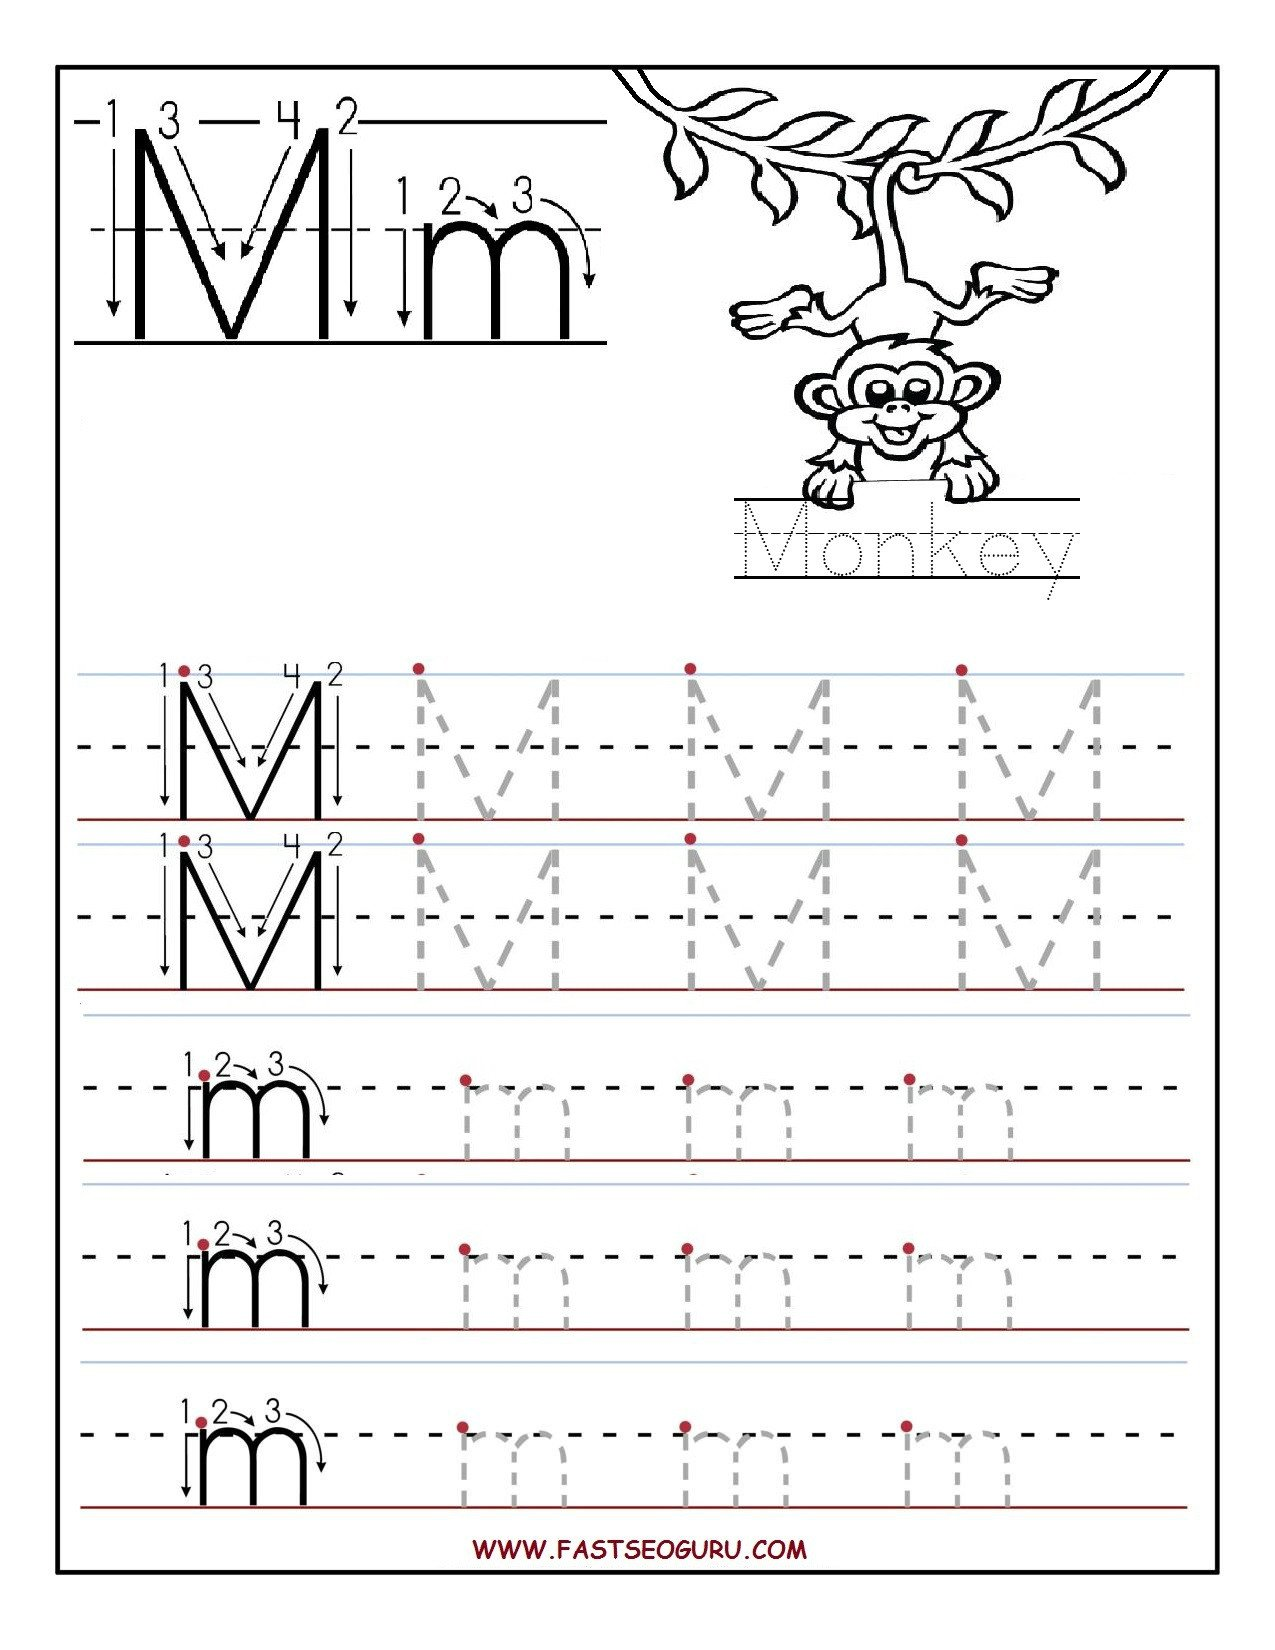 Letter G Tracing Worksheets Preschool Printable Letter M Tracing Worksheets for Preschool